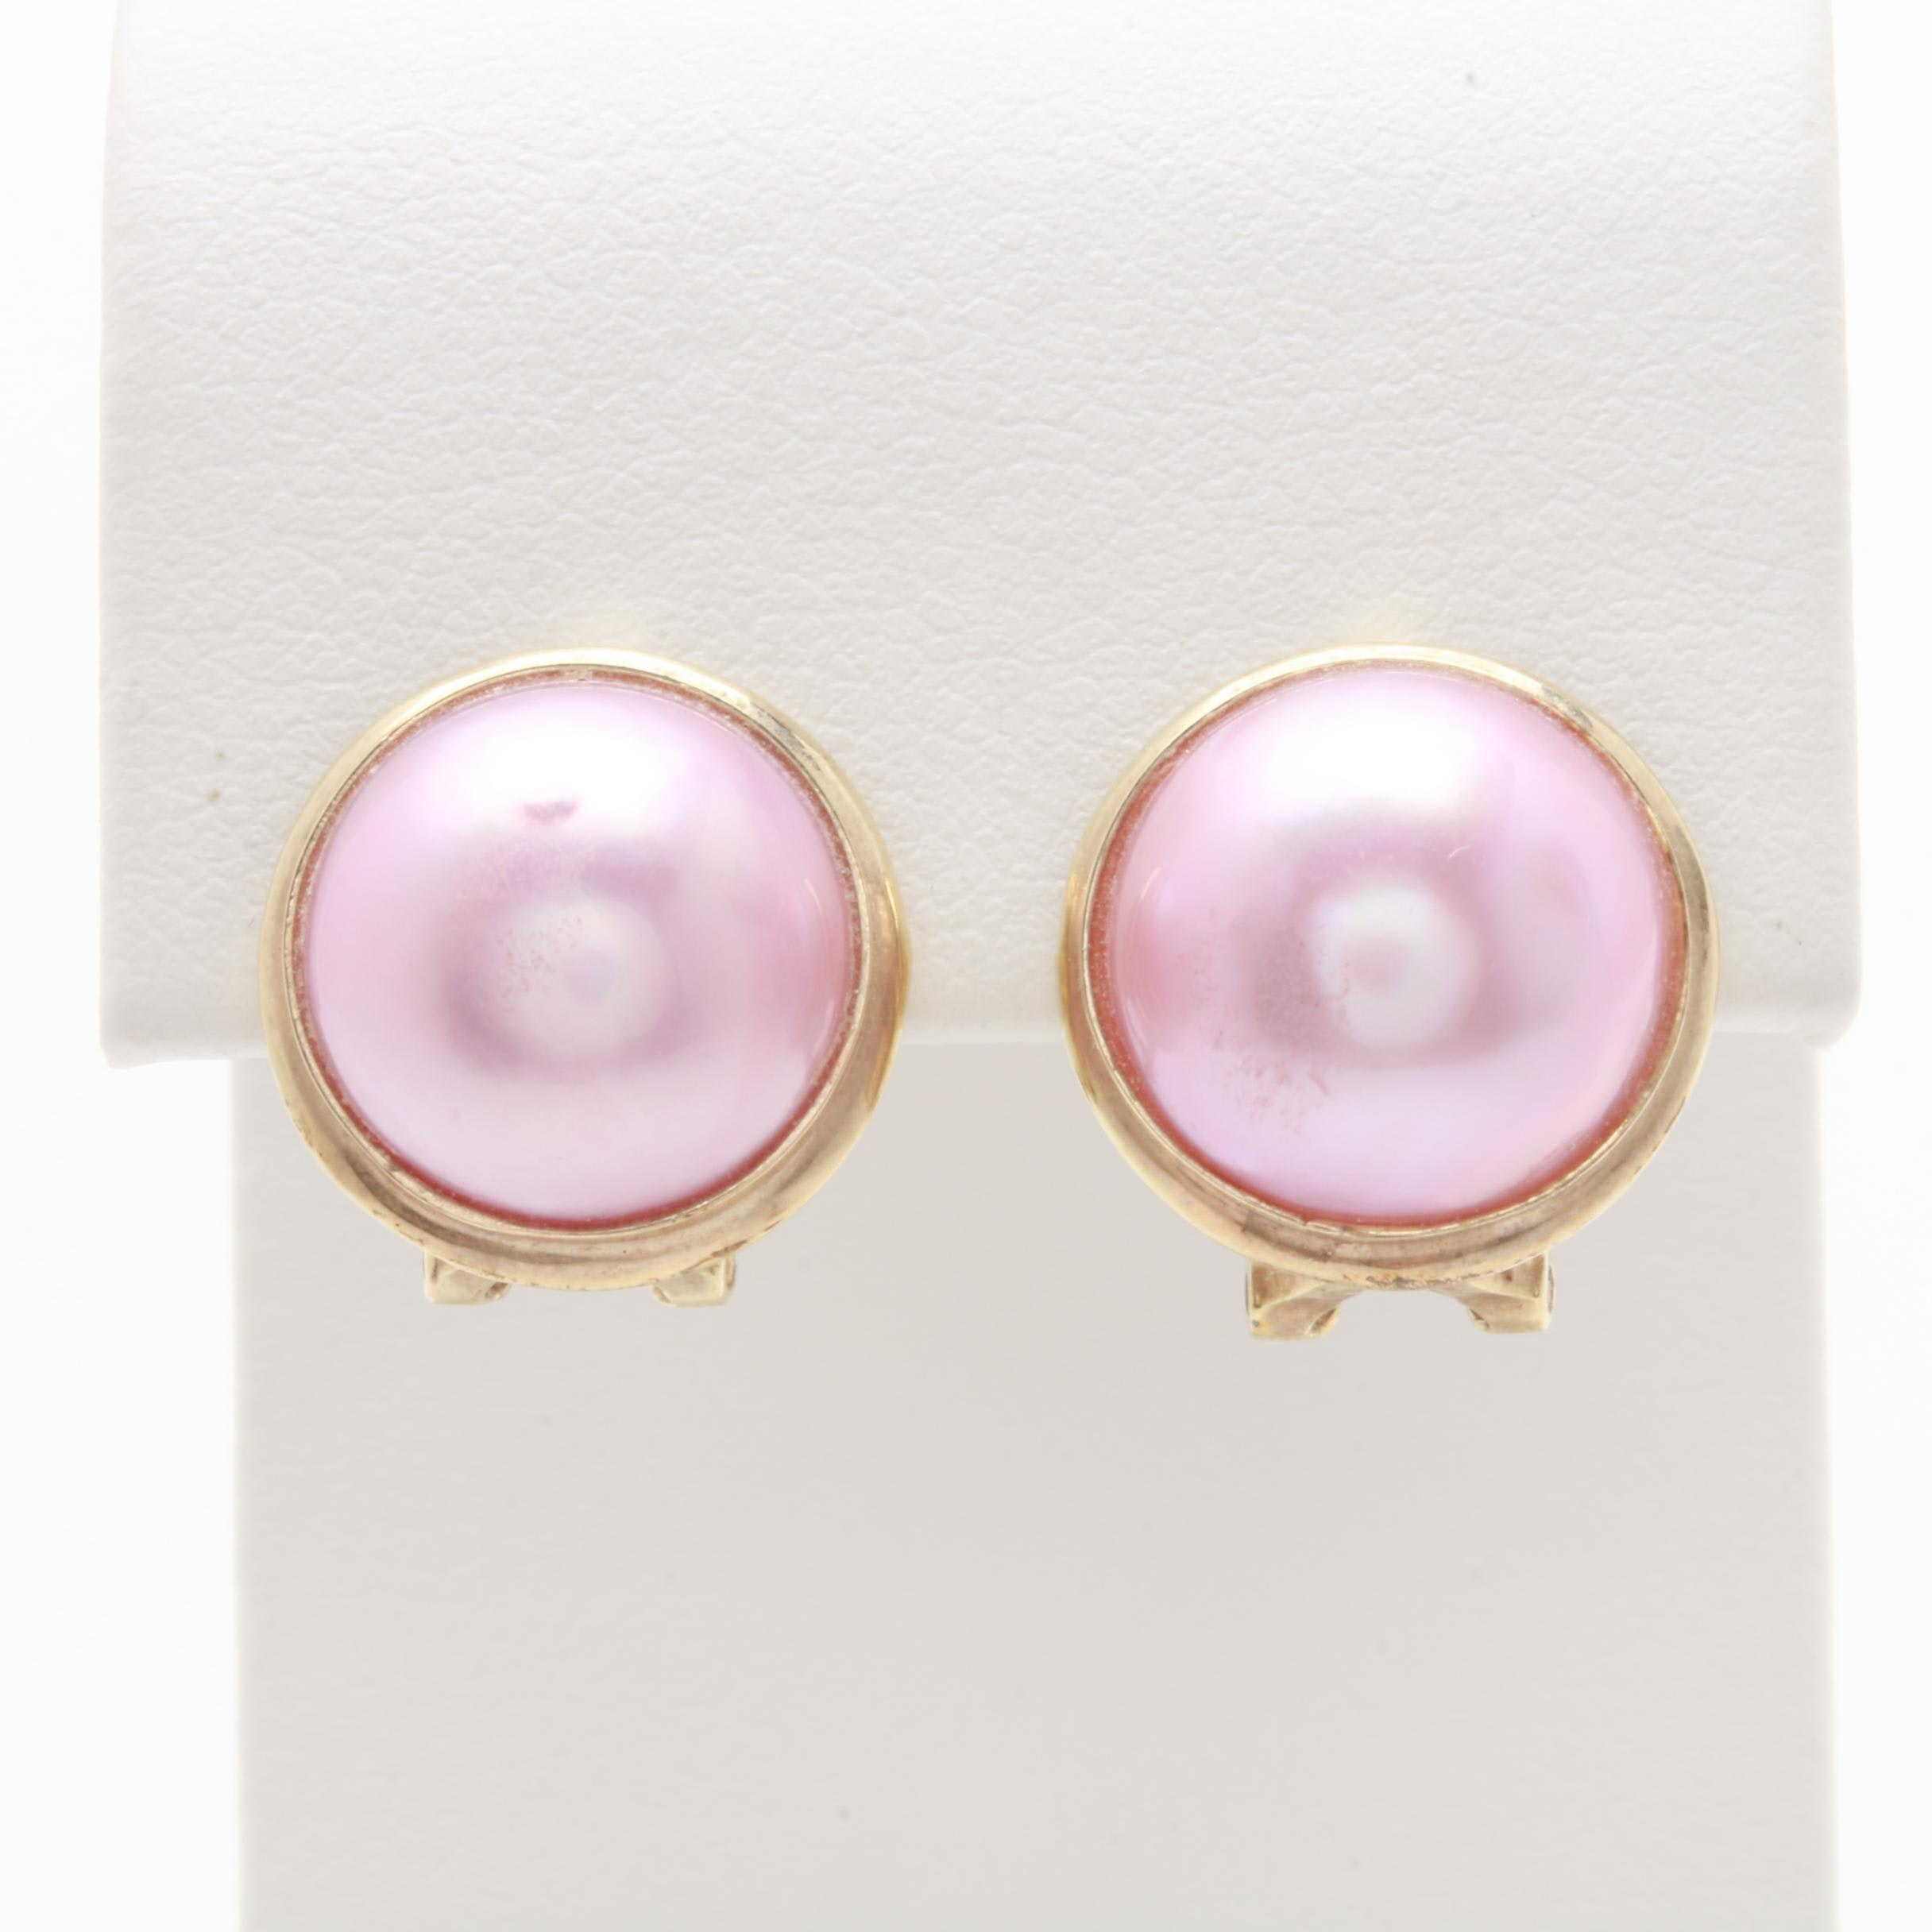 14K Yellow Gold Mabé Cultured Pearl Earrings